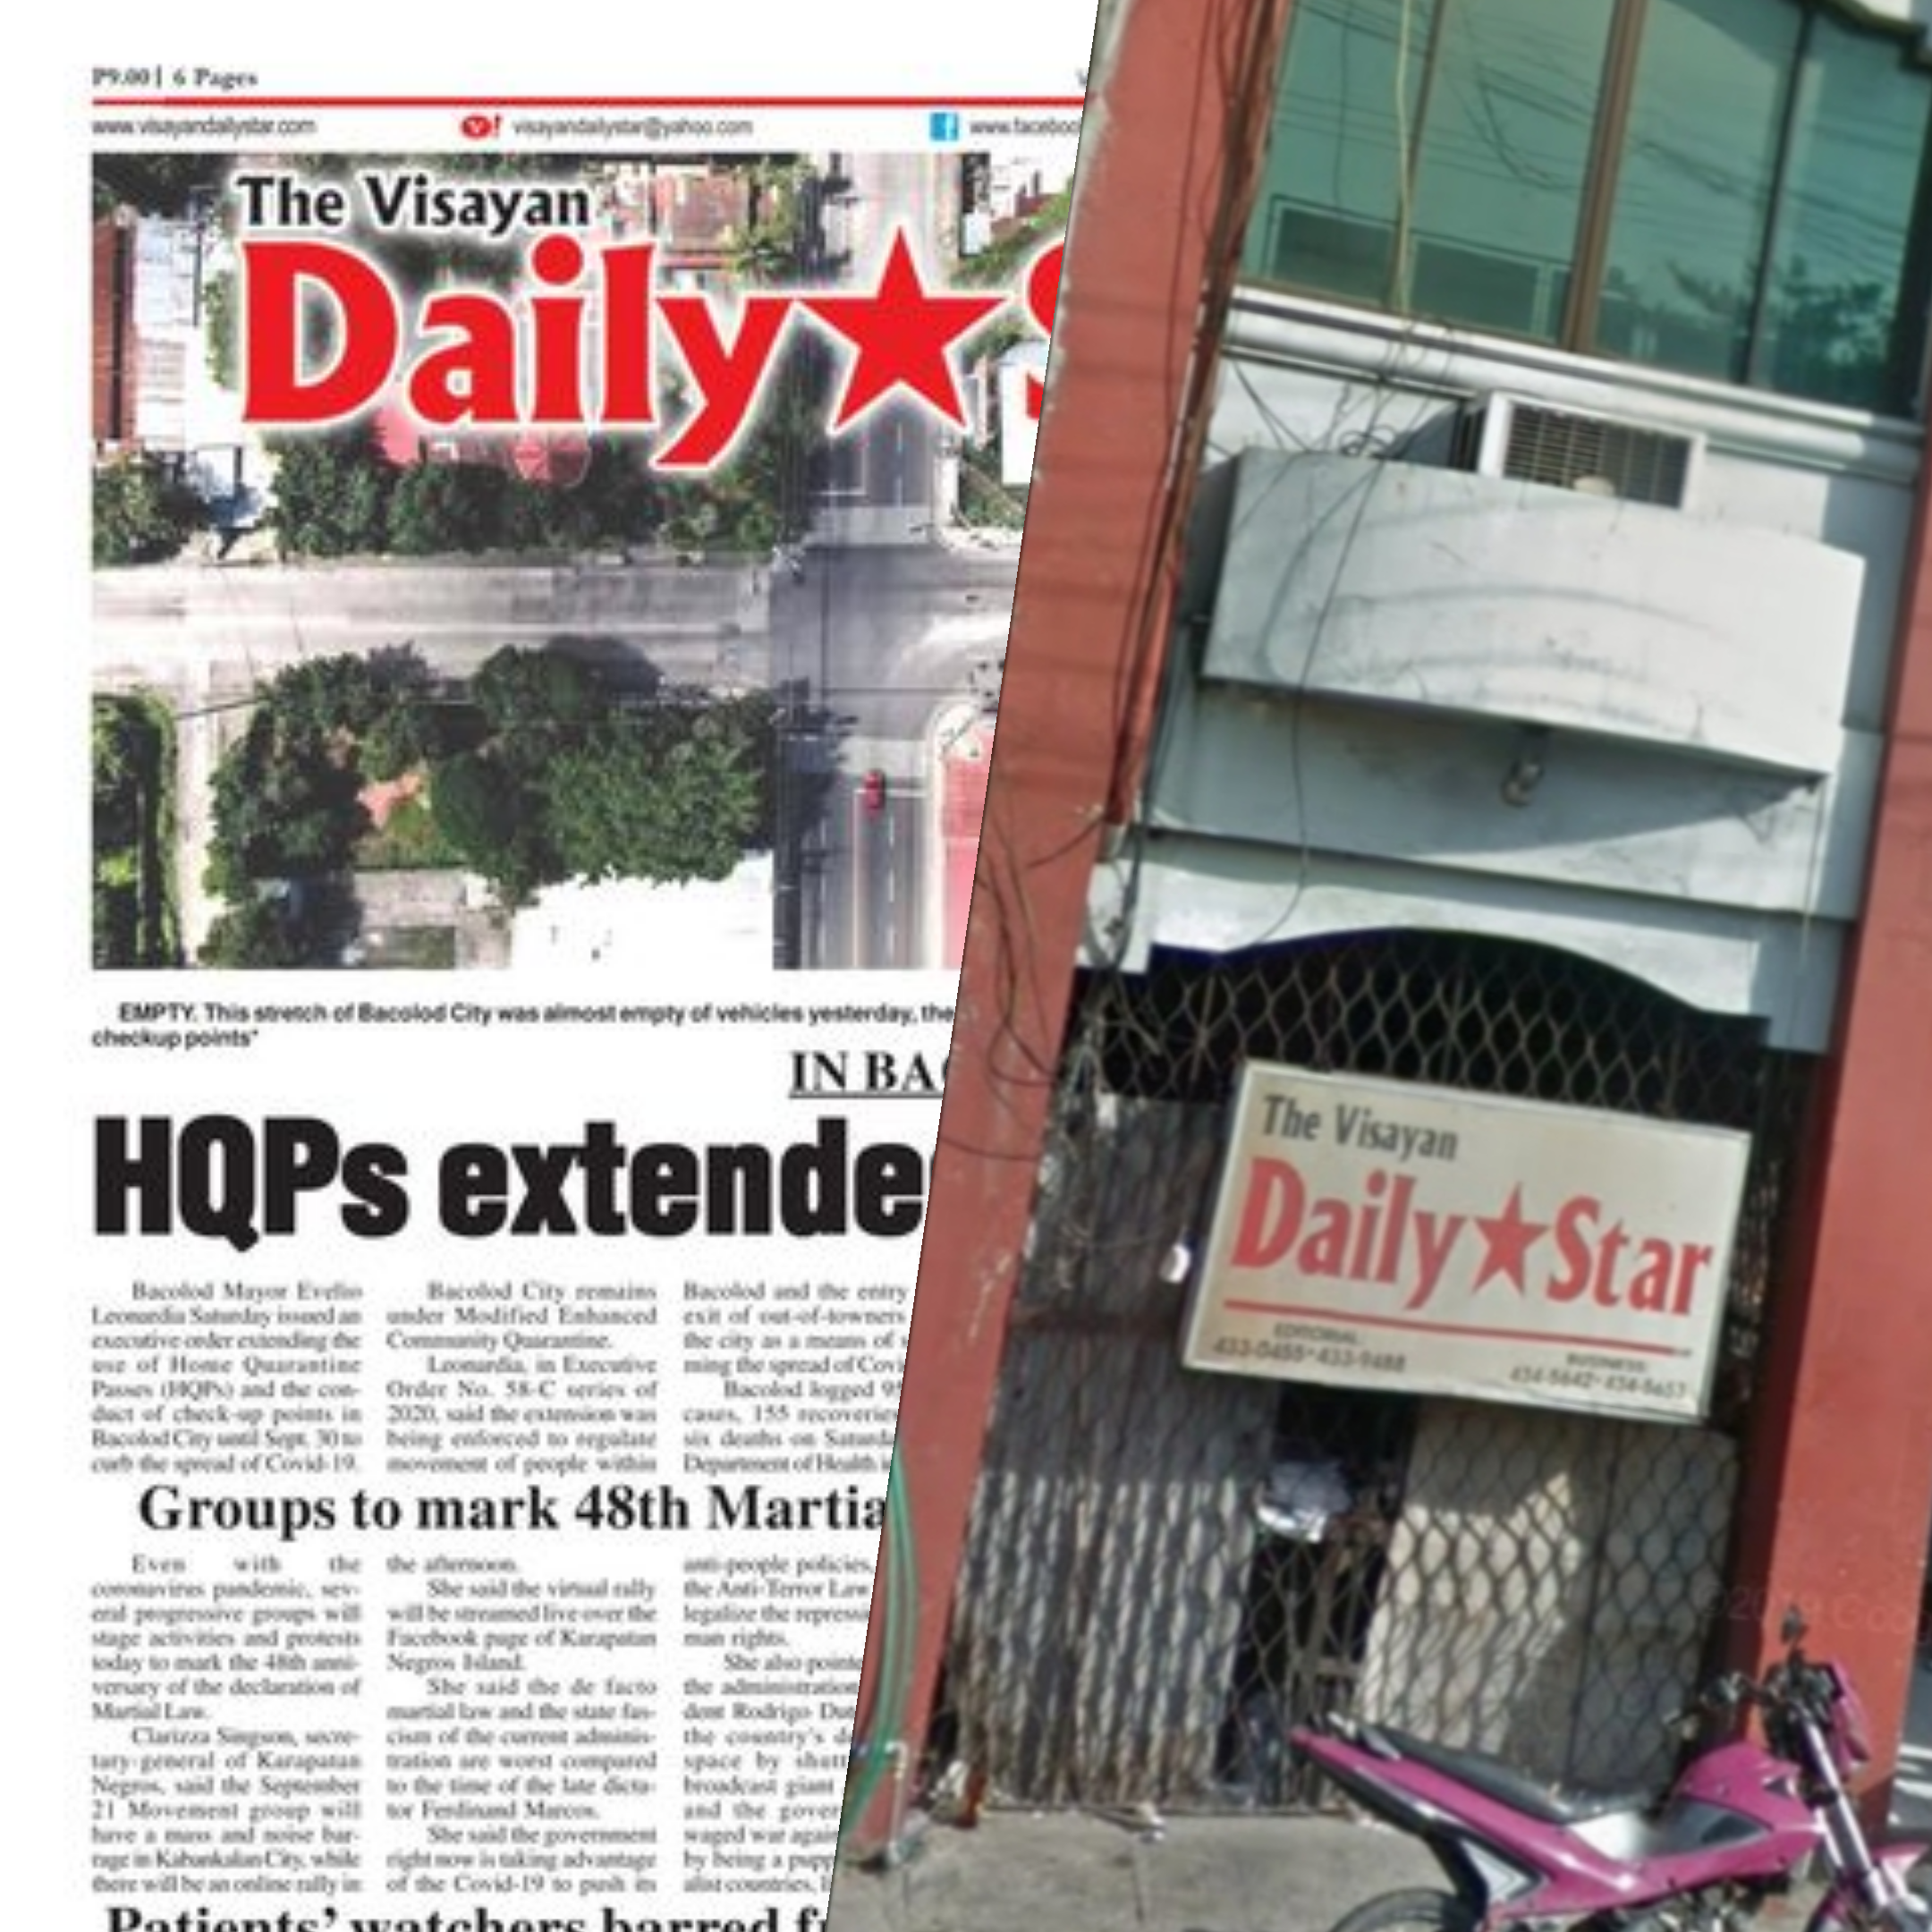 Visayan Daily Star now part of Inquirer News Initiative